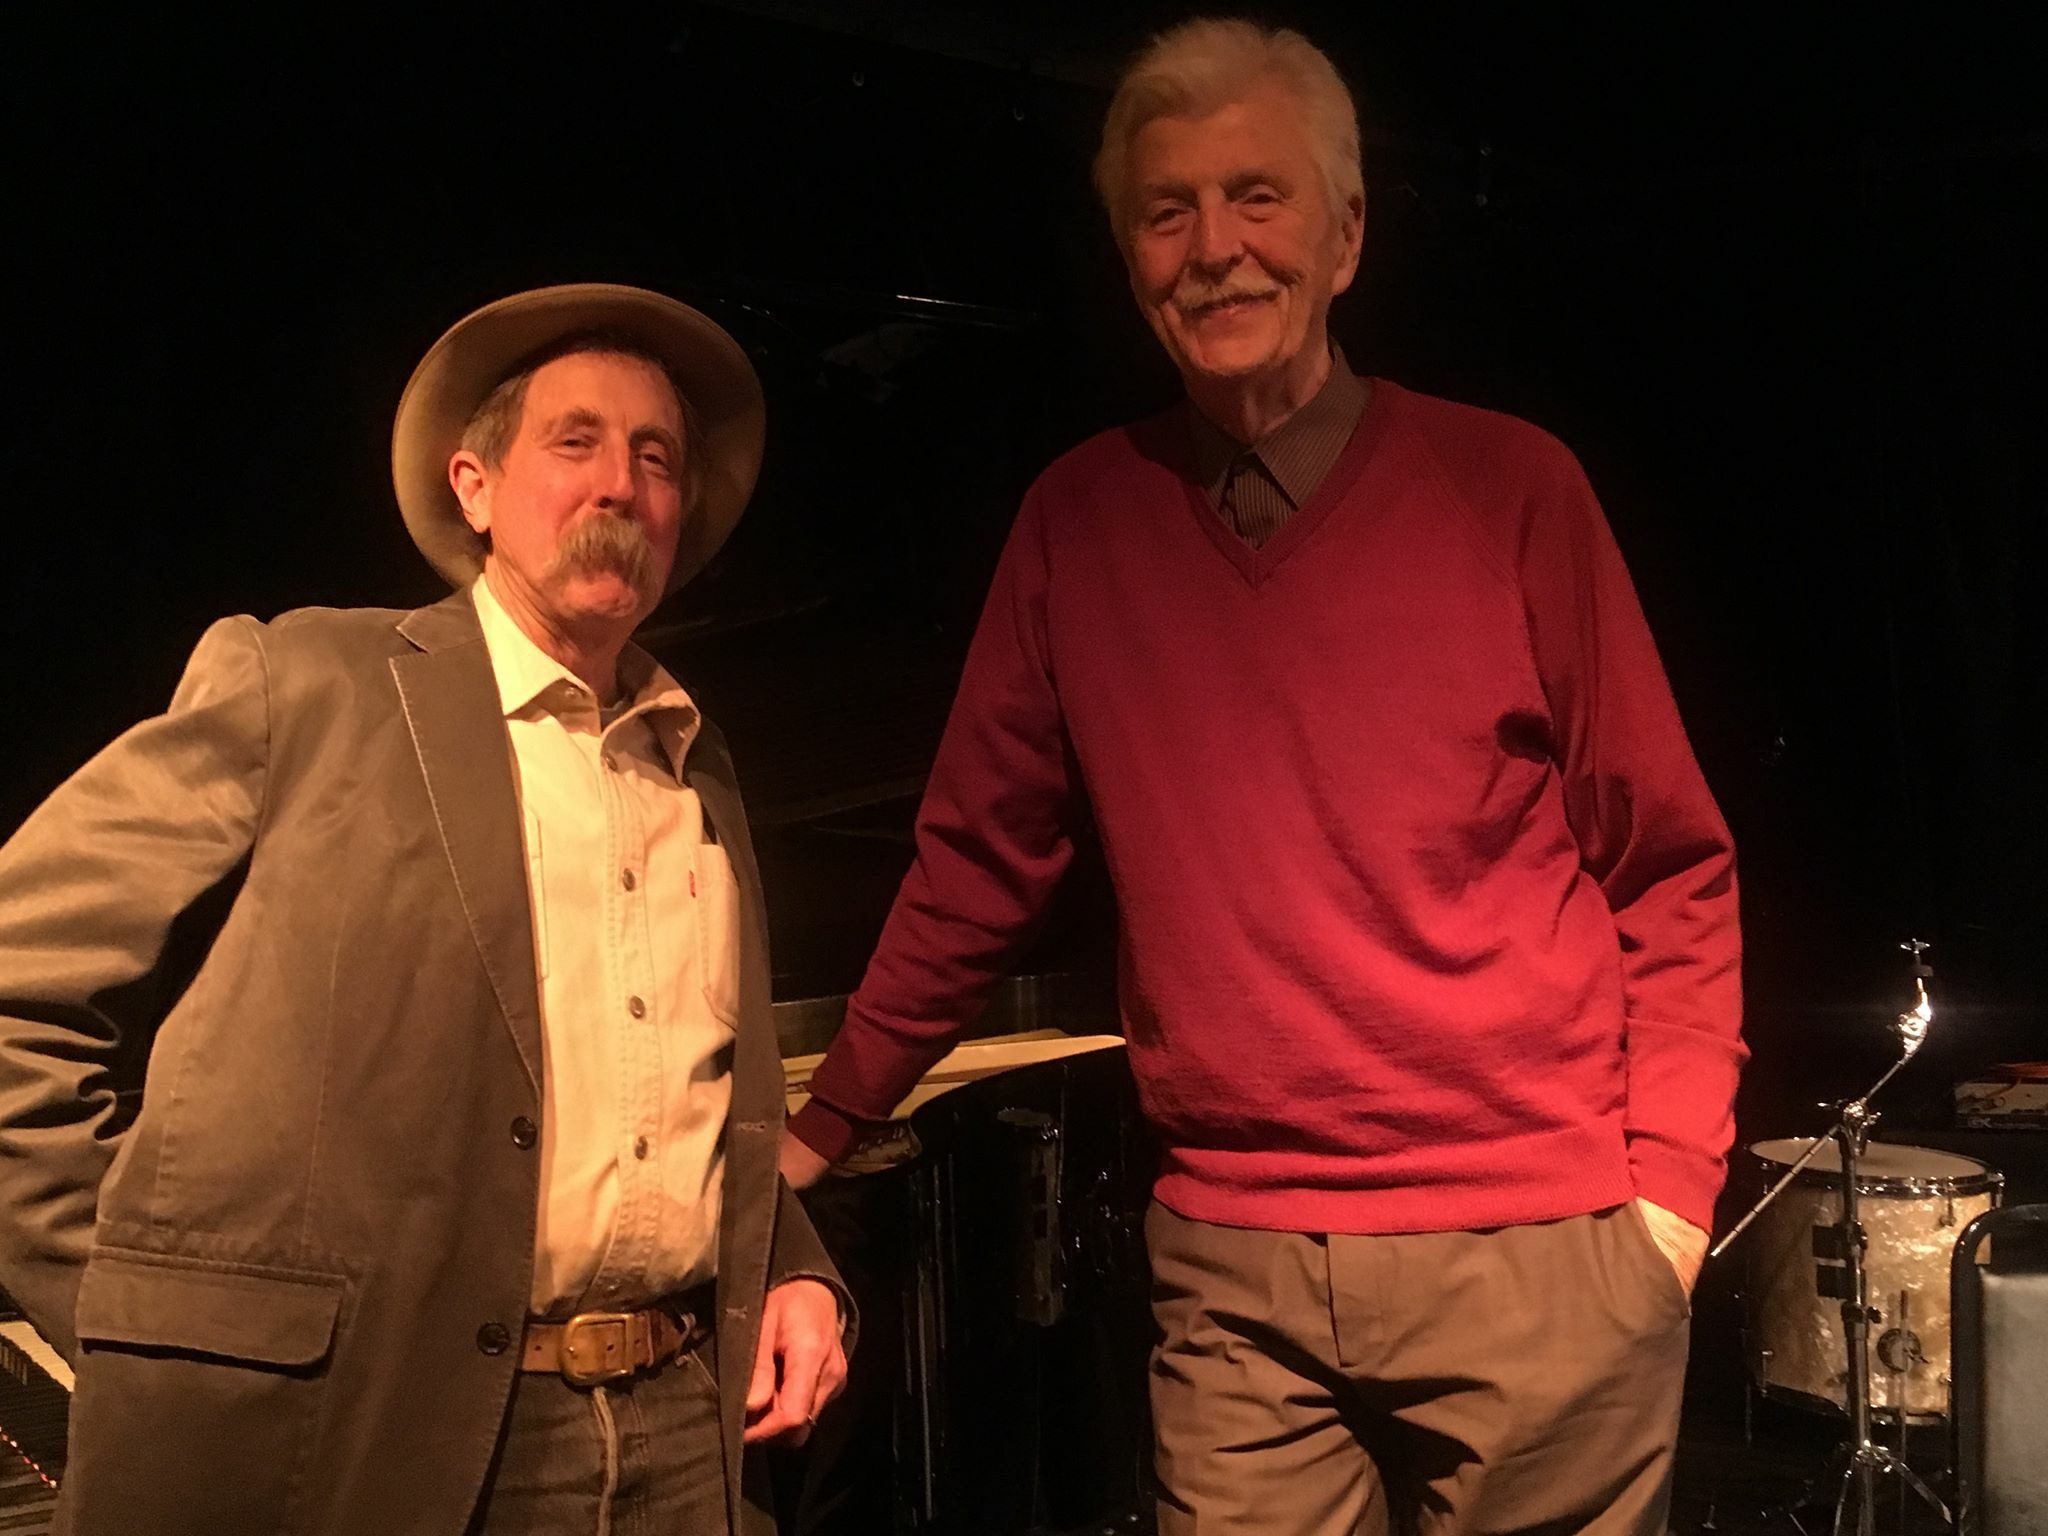 Butch is guest with Pat Donohue & the Prairie All Stars, Sunday Dec. 19th at 7:30 p.m. at the History Theater in St. Paul.